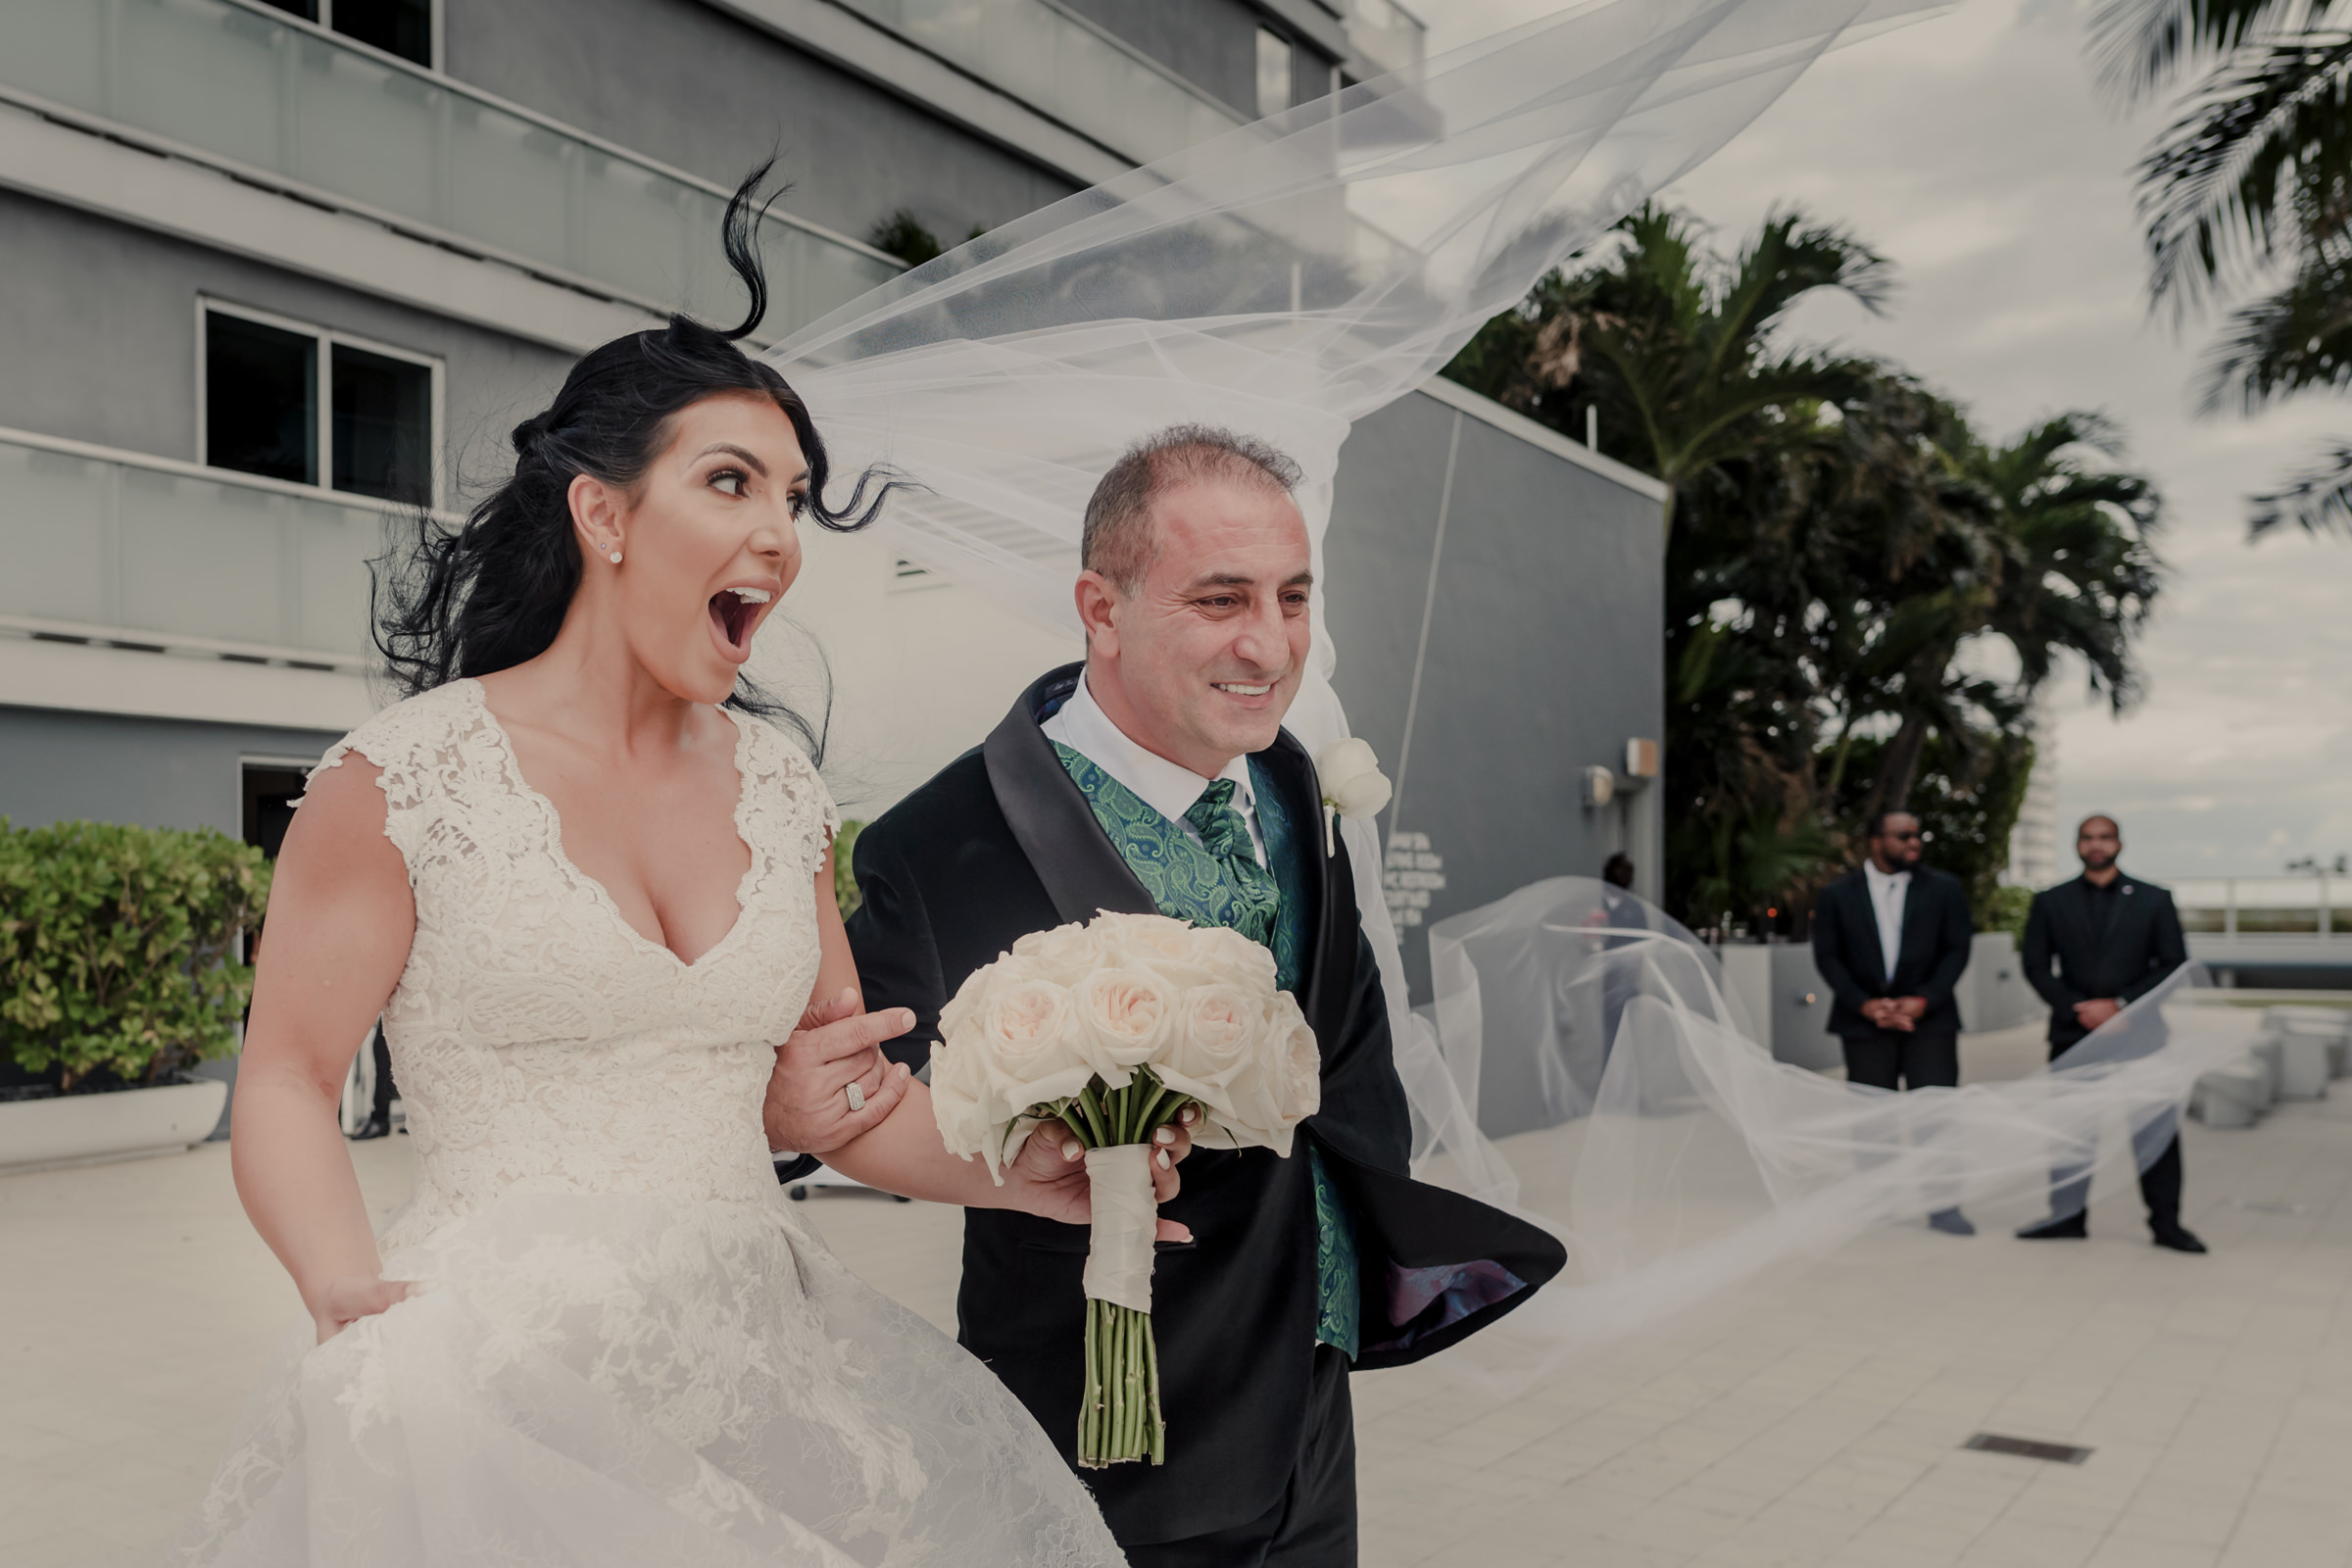 Brides veil blows away walking down the aisle - photo by El Marco Rojo